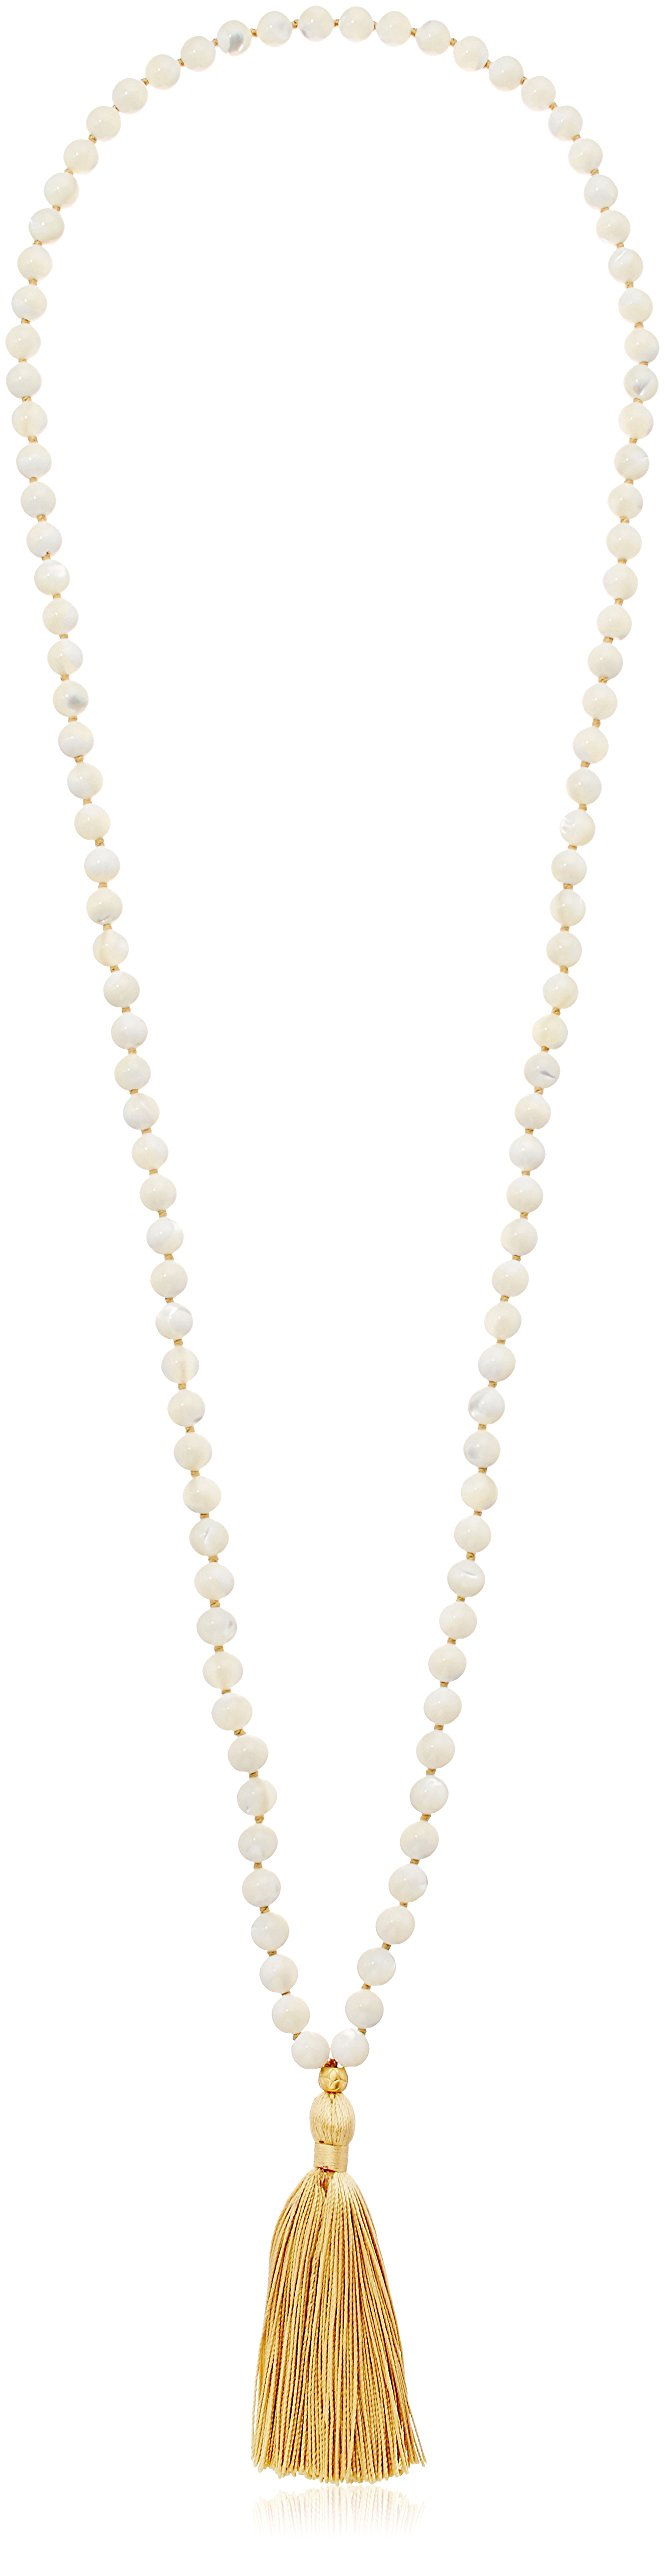 Satya Jewelry Classics Mother of Pearl Gold Plate Lotus Tassel Mala Strand Necklace, 38''